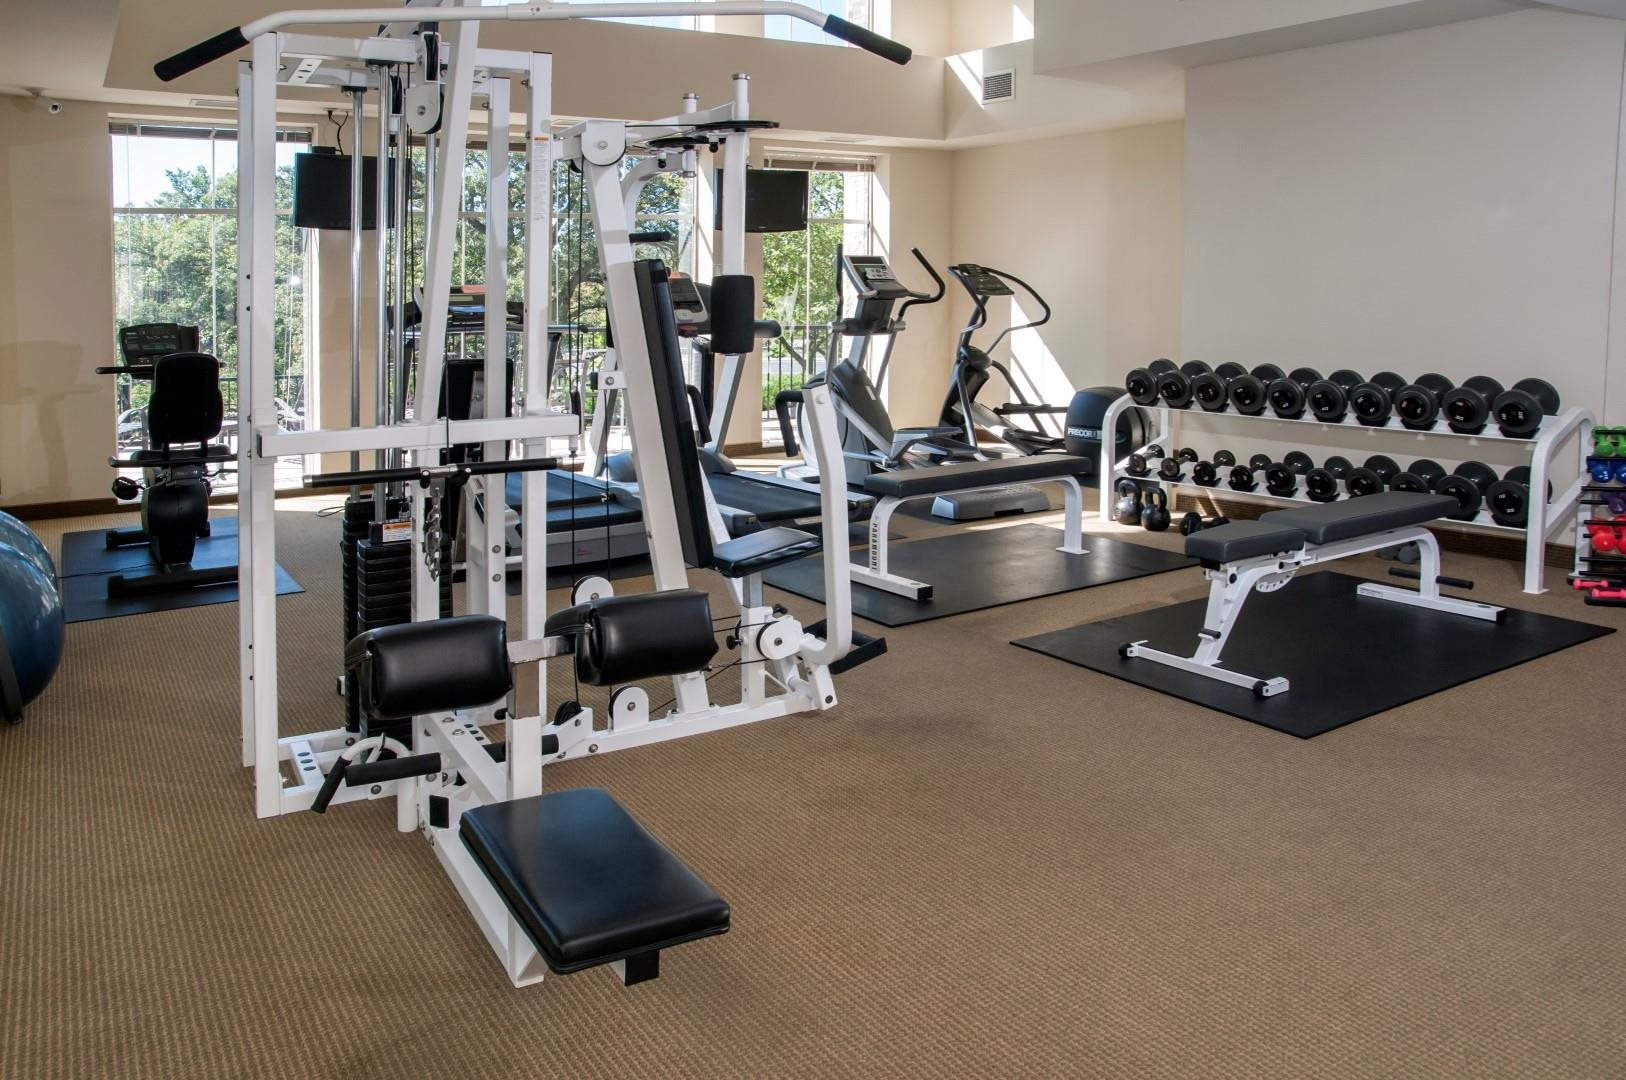 Fitness room weights and cardio machines